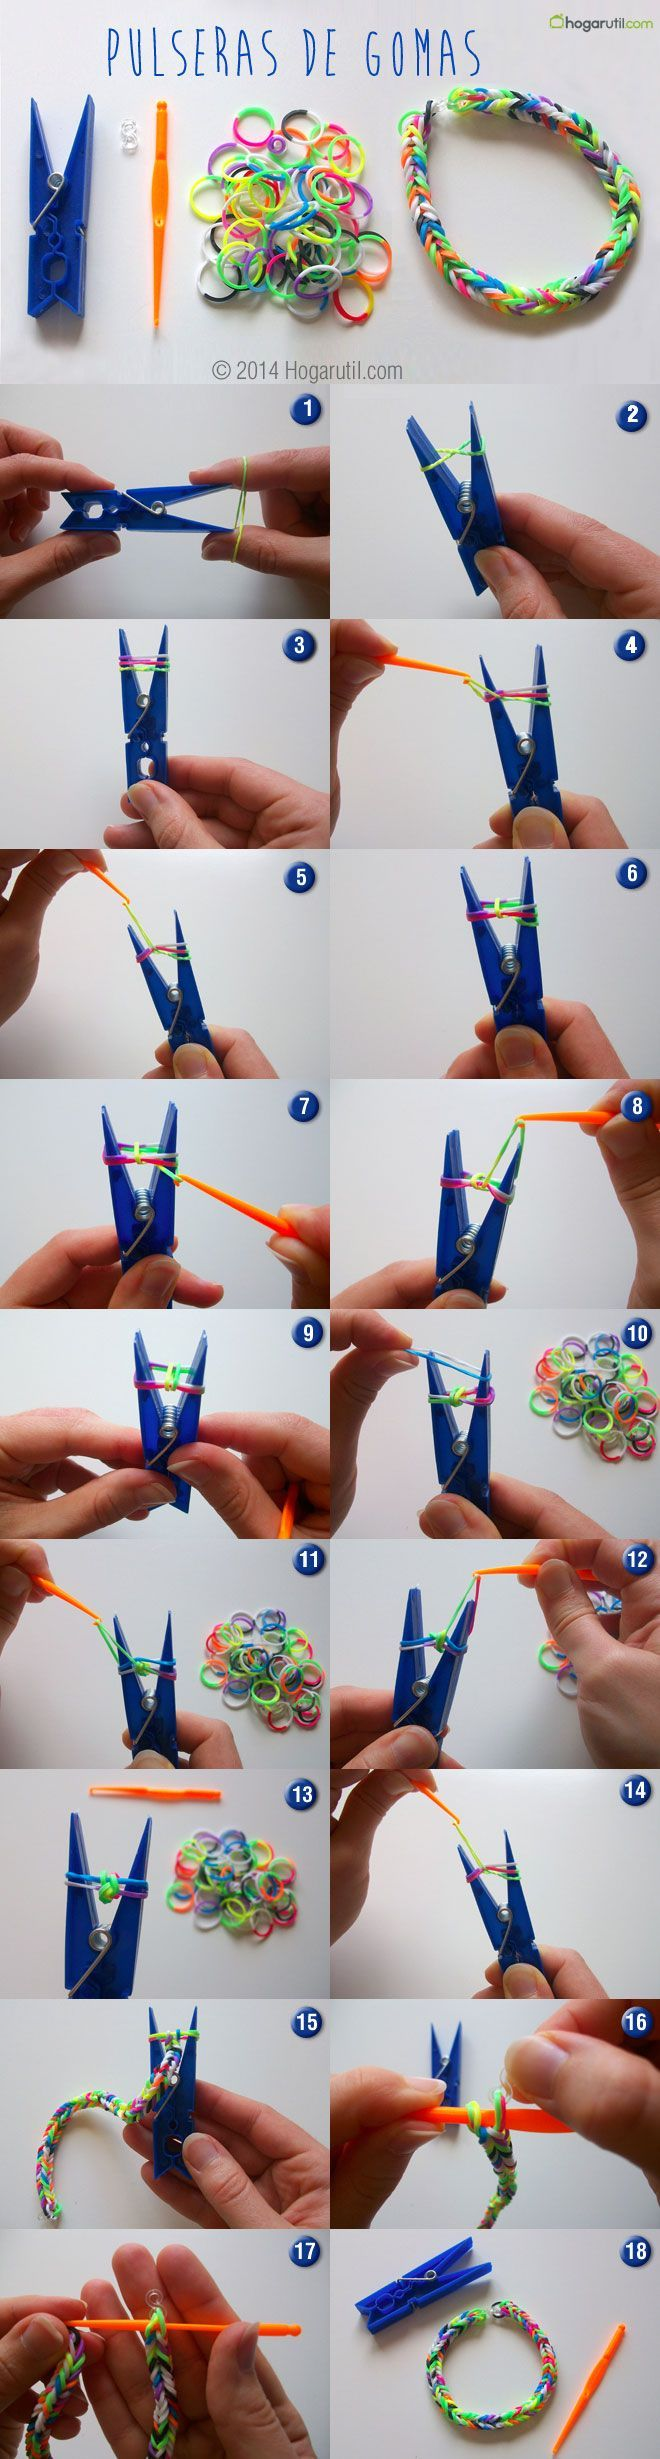 18 Best Images About Manualidades Con Gomitas Sin Telar On